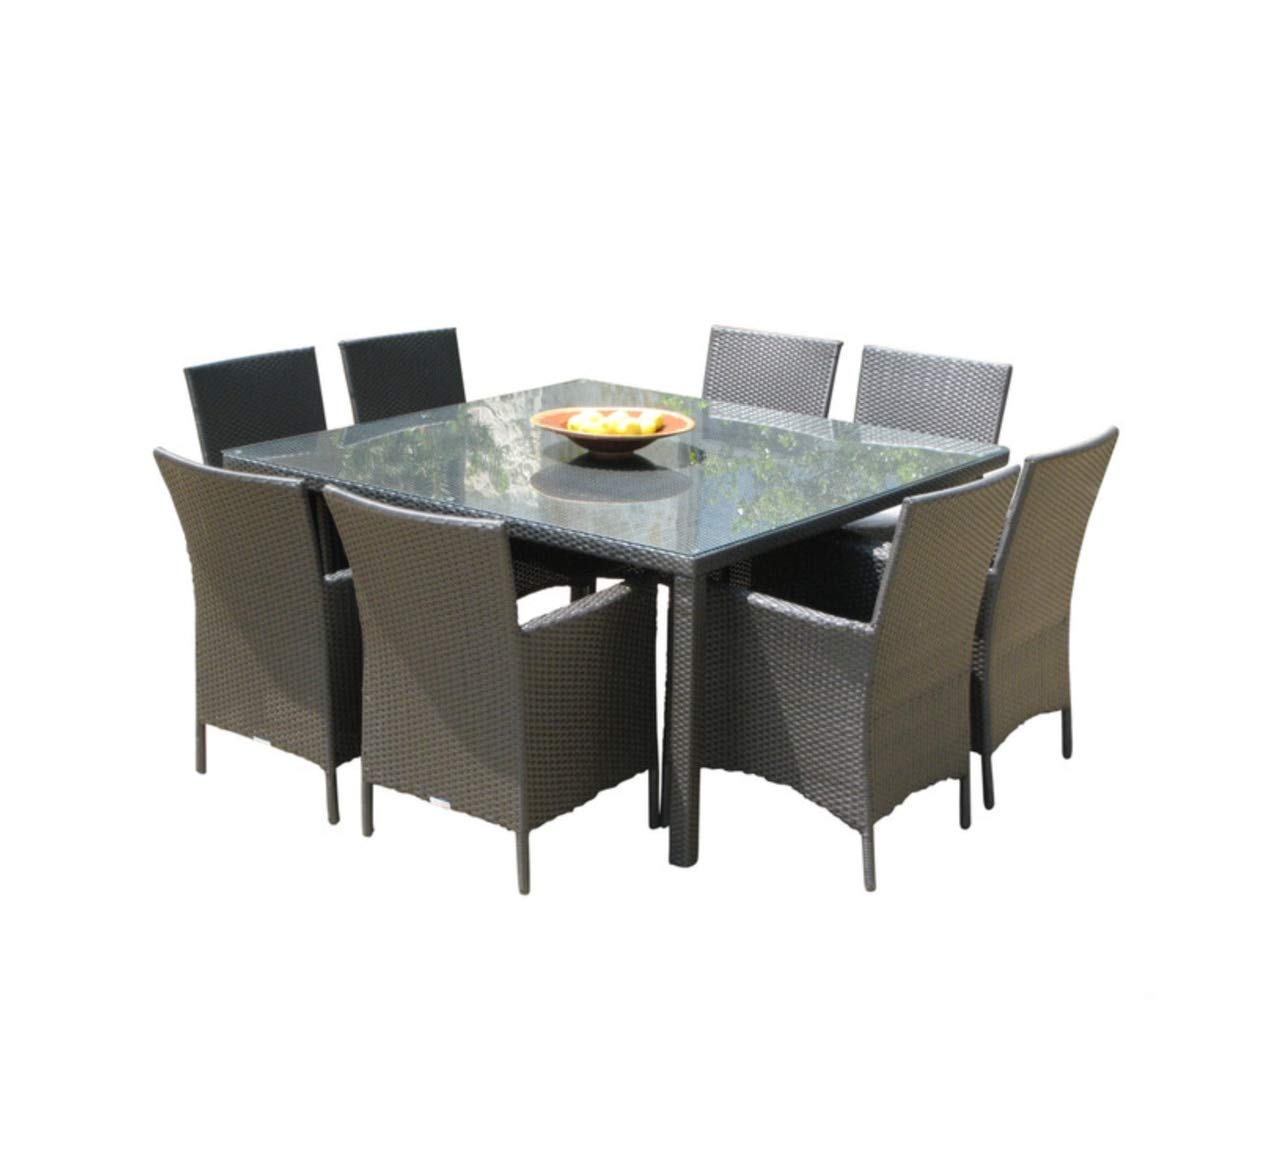 Brilliant Outdoor Patio Wicker Furniture New Resin 9 Piece Square Dining Table Chairs Set Short Links Chair Design For Home Short Linksinfo